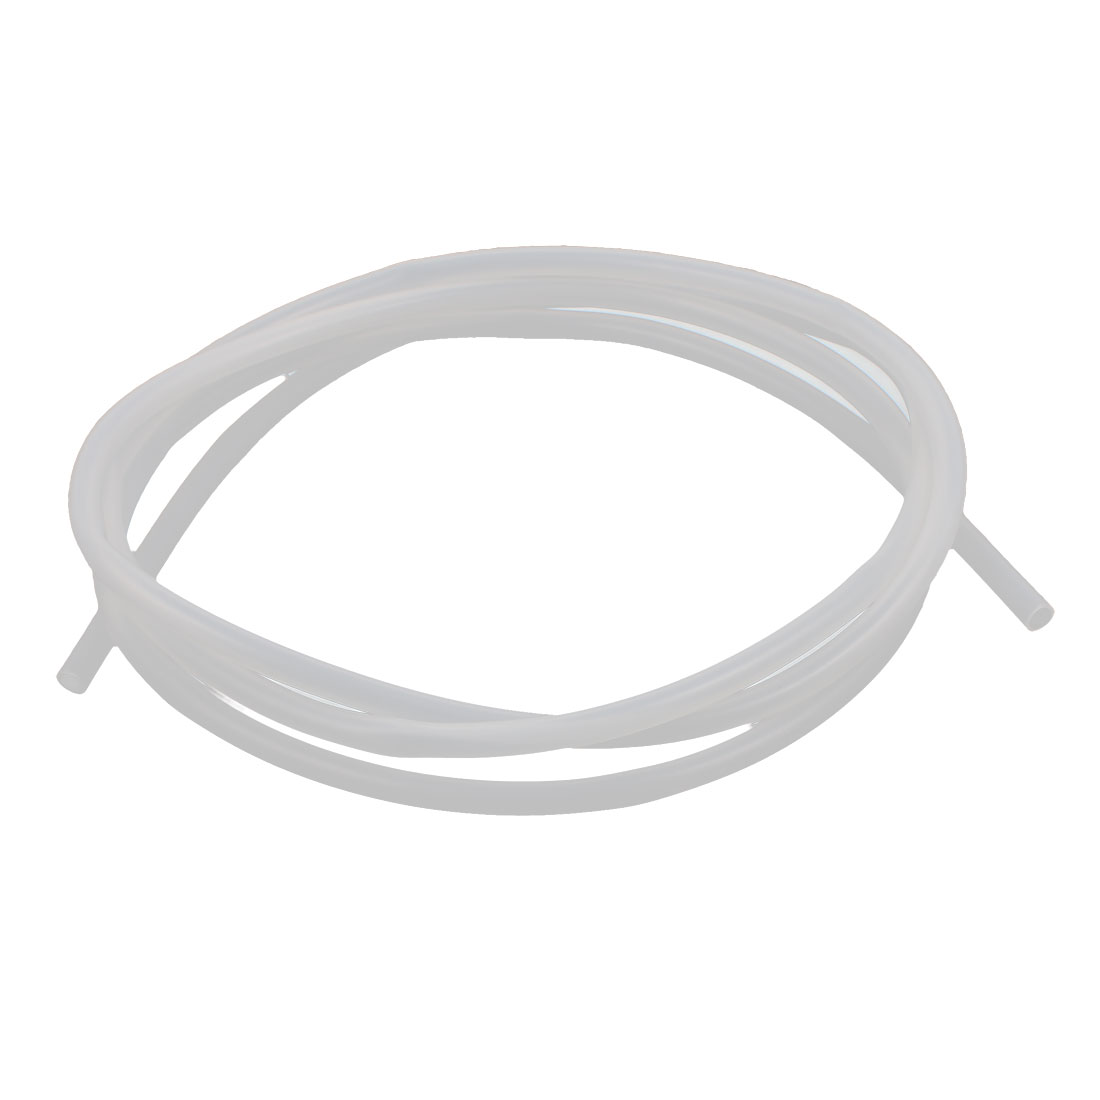 5mm x 7mm Translucent Silicone Tube Water Heat Resistant Hose Pipe 2 Meters Length